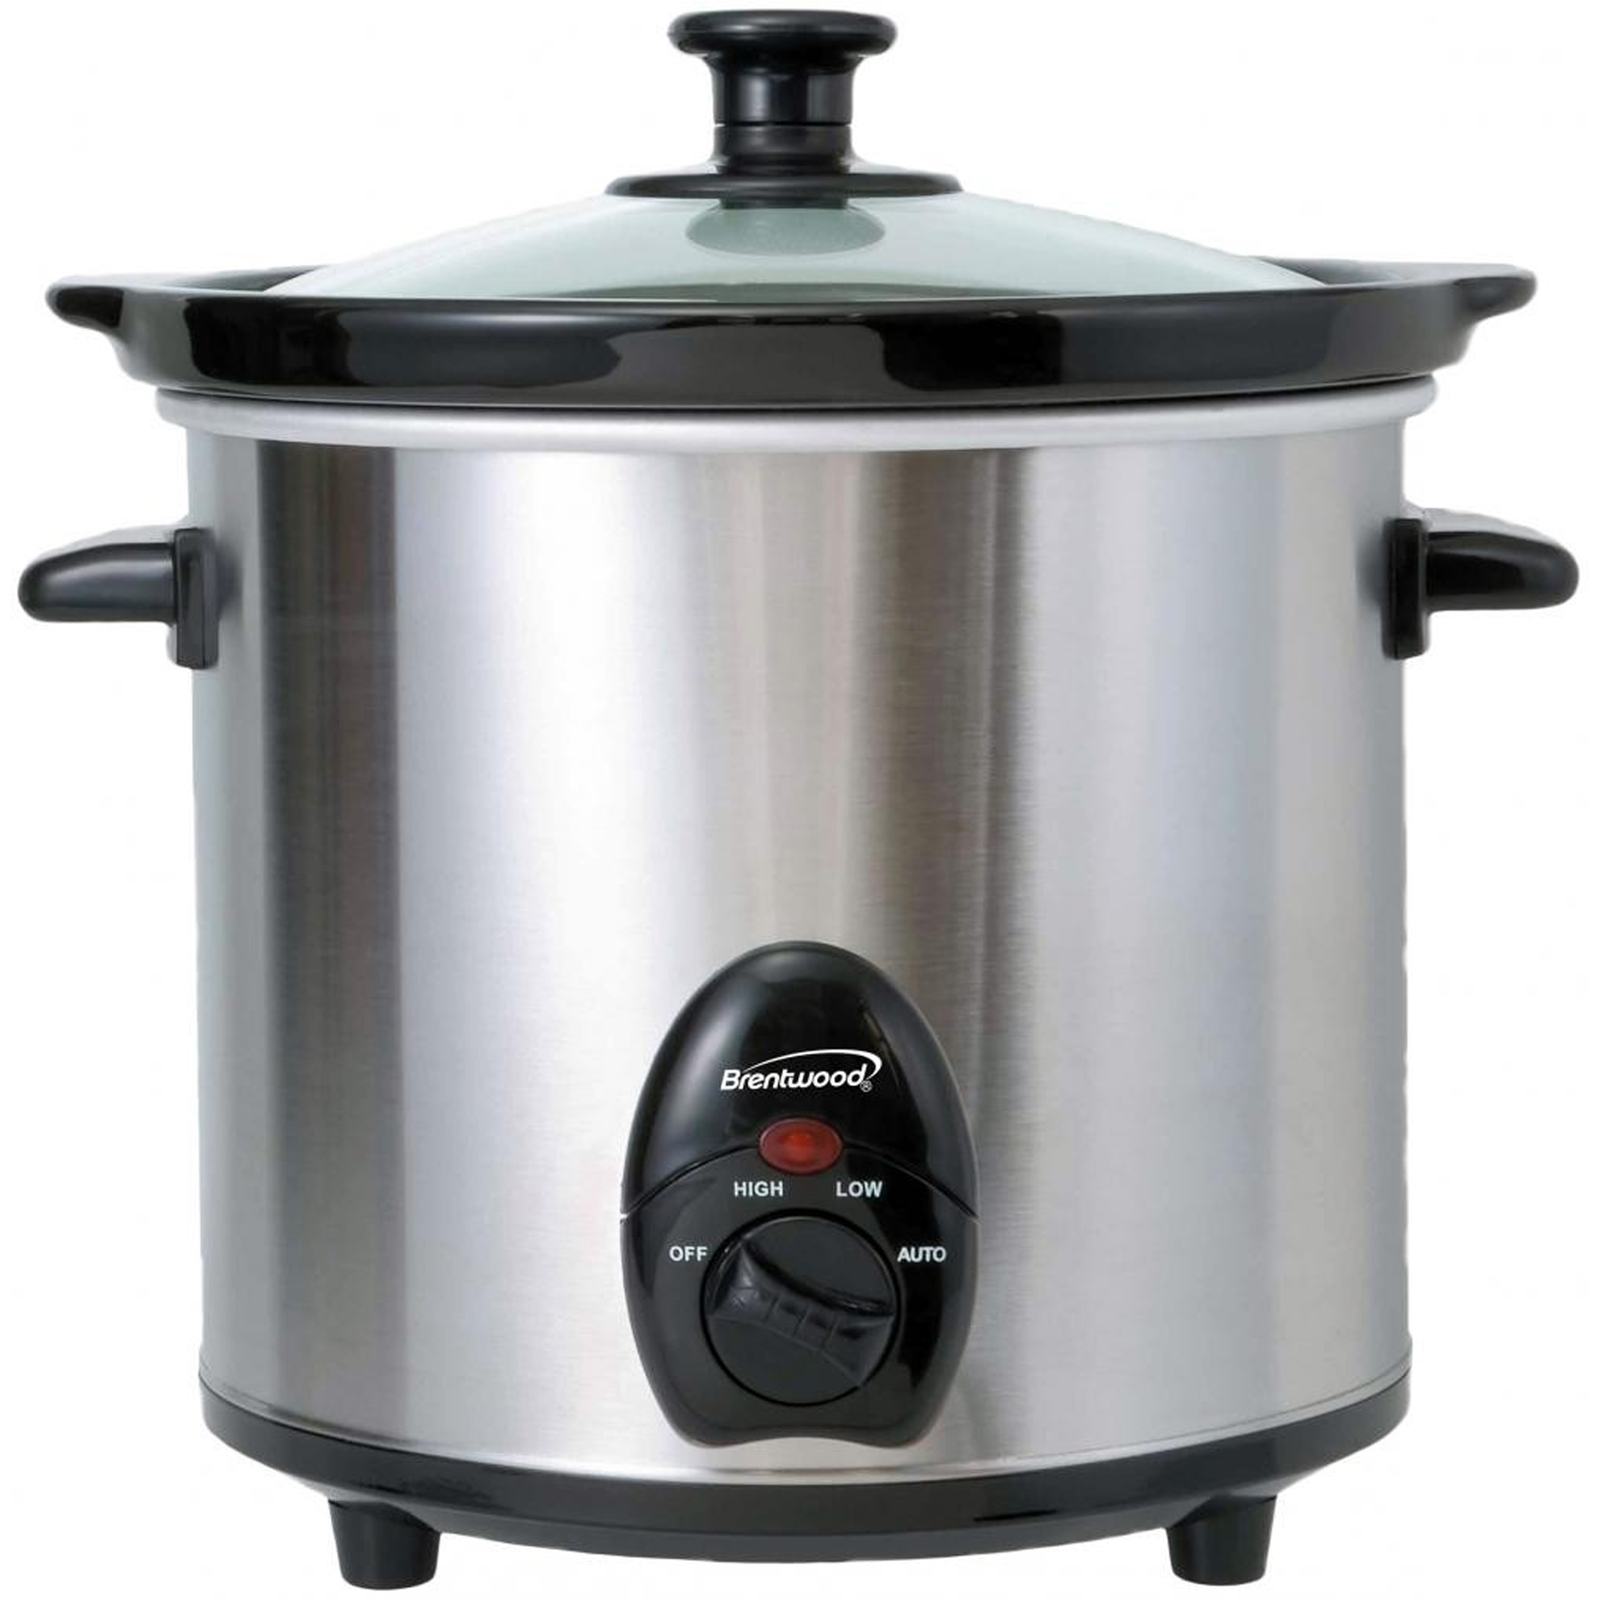 Brentwood 3 QT Slow Cooker by Supplier Generic